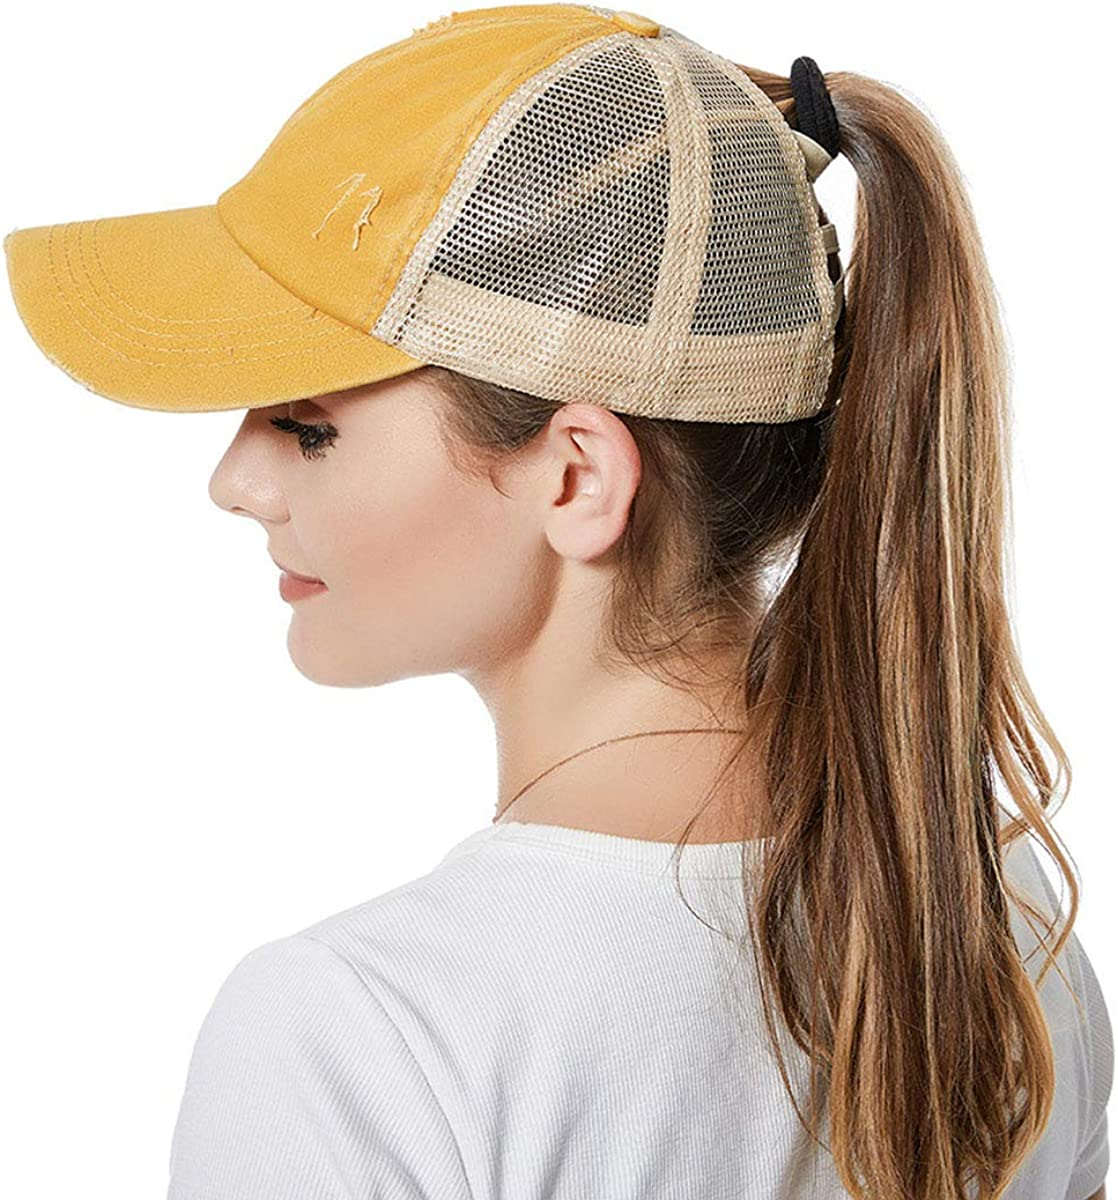 Baseball Cap Retro Adjustable Washed Distressed Ponytail Bun Sun Hat for Women and Girls Trucker Caps